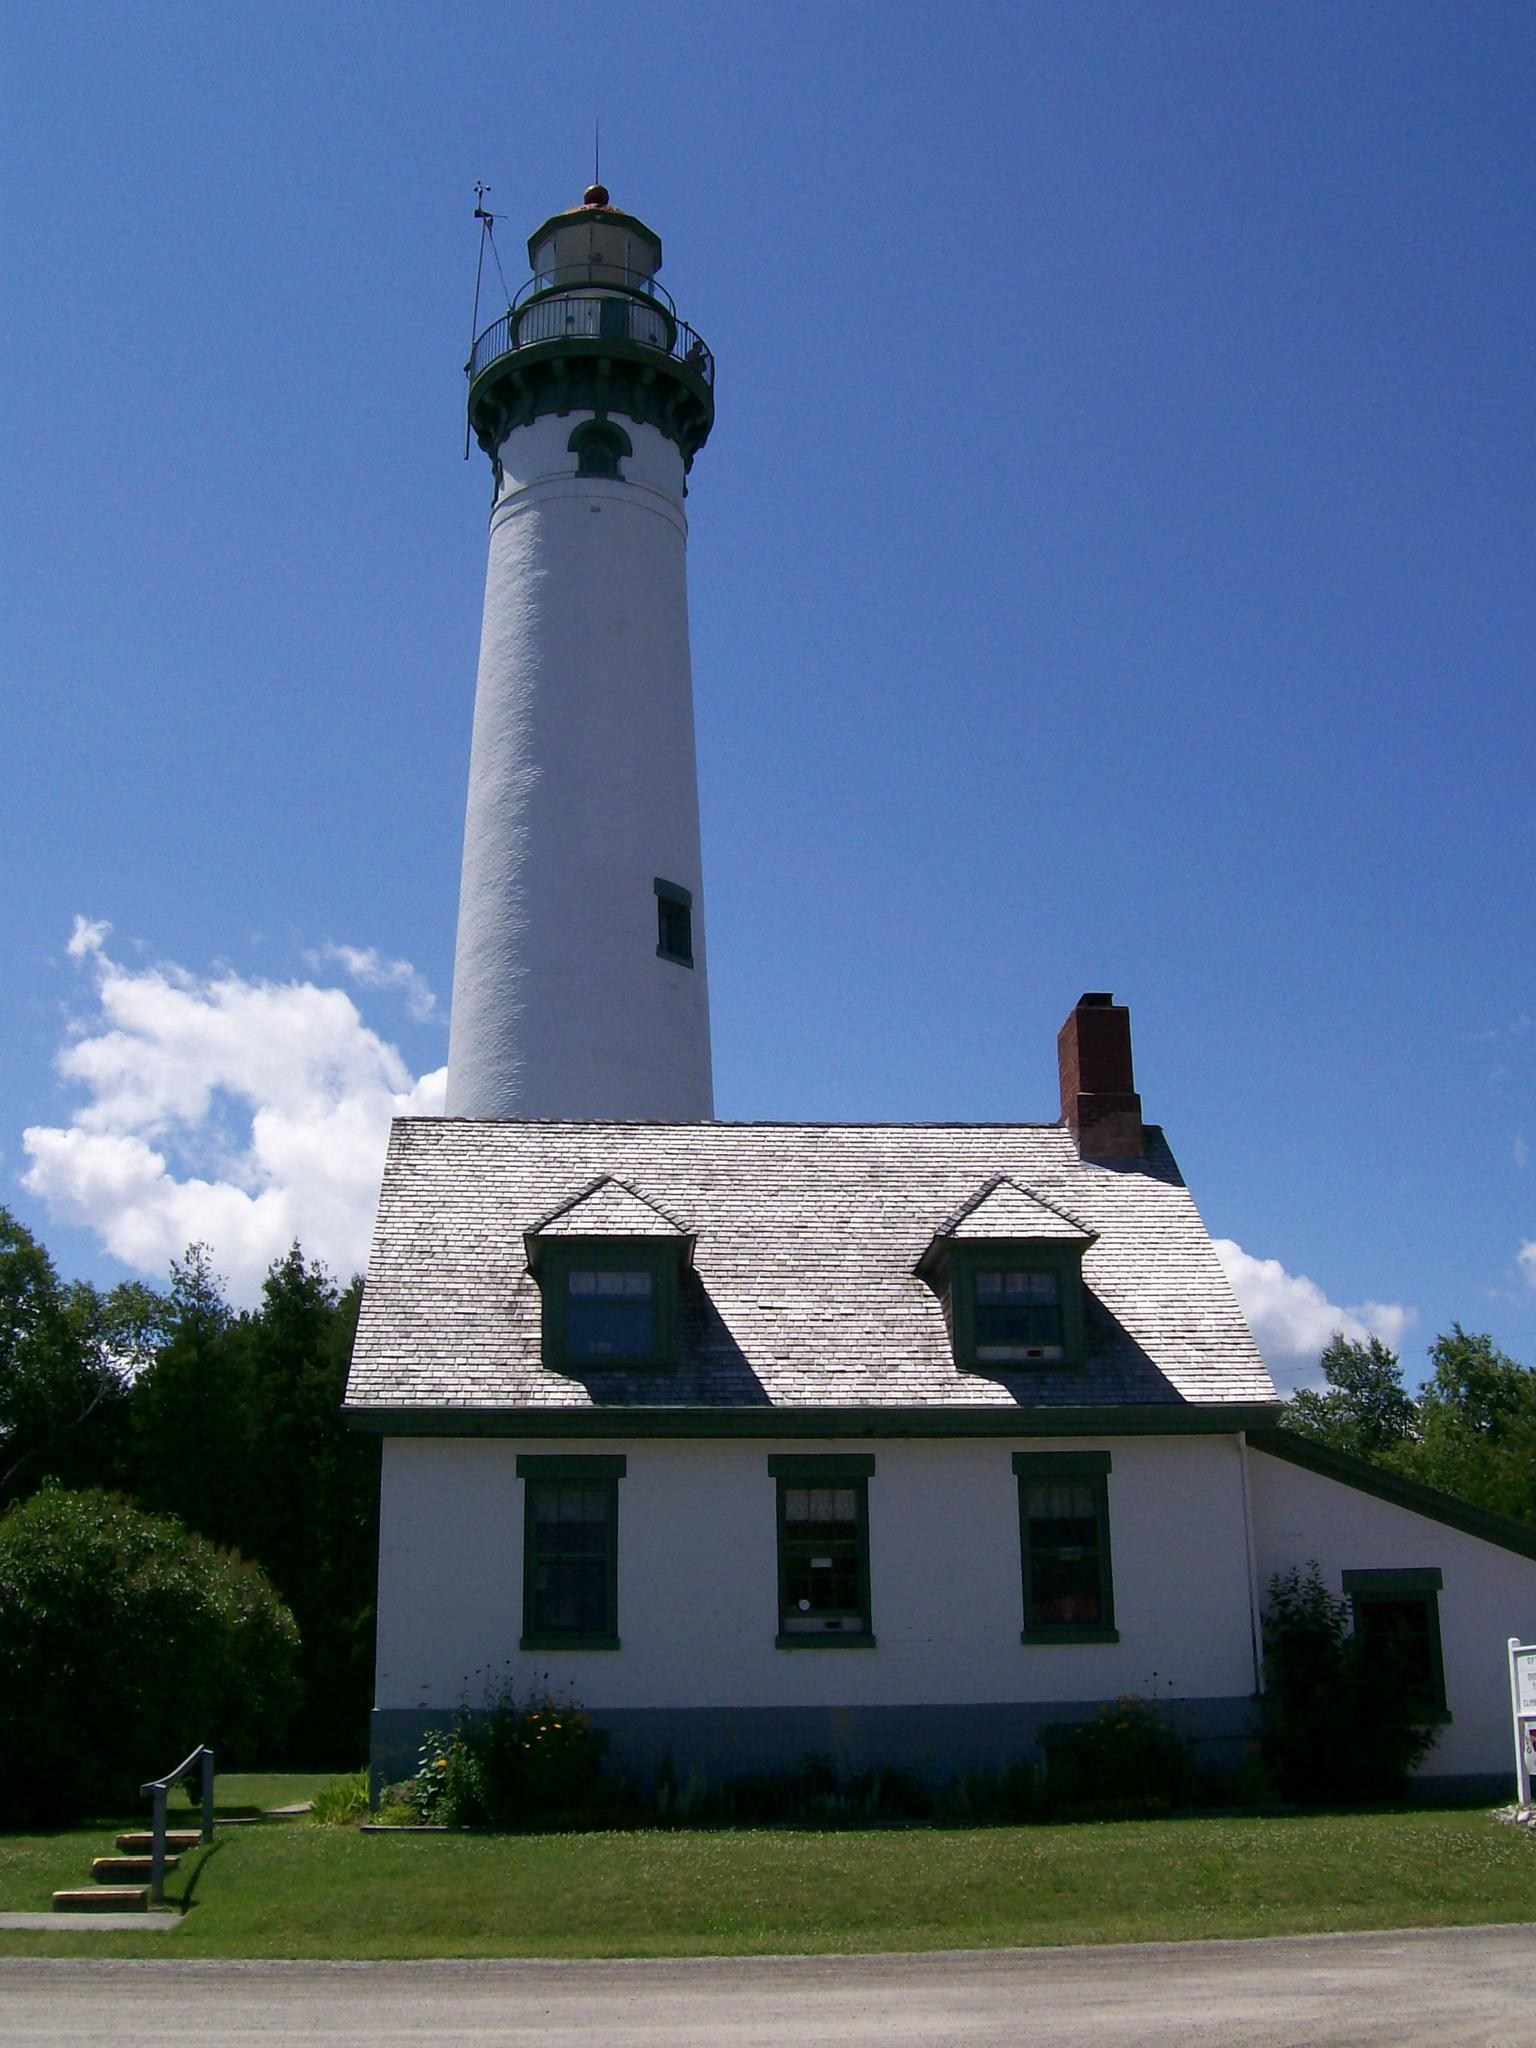 Presque Isle Lighthouse by monicafloresp59